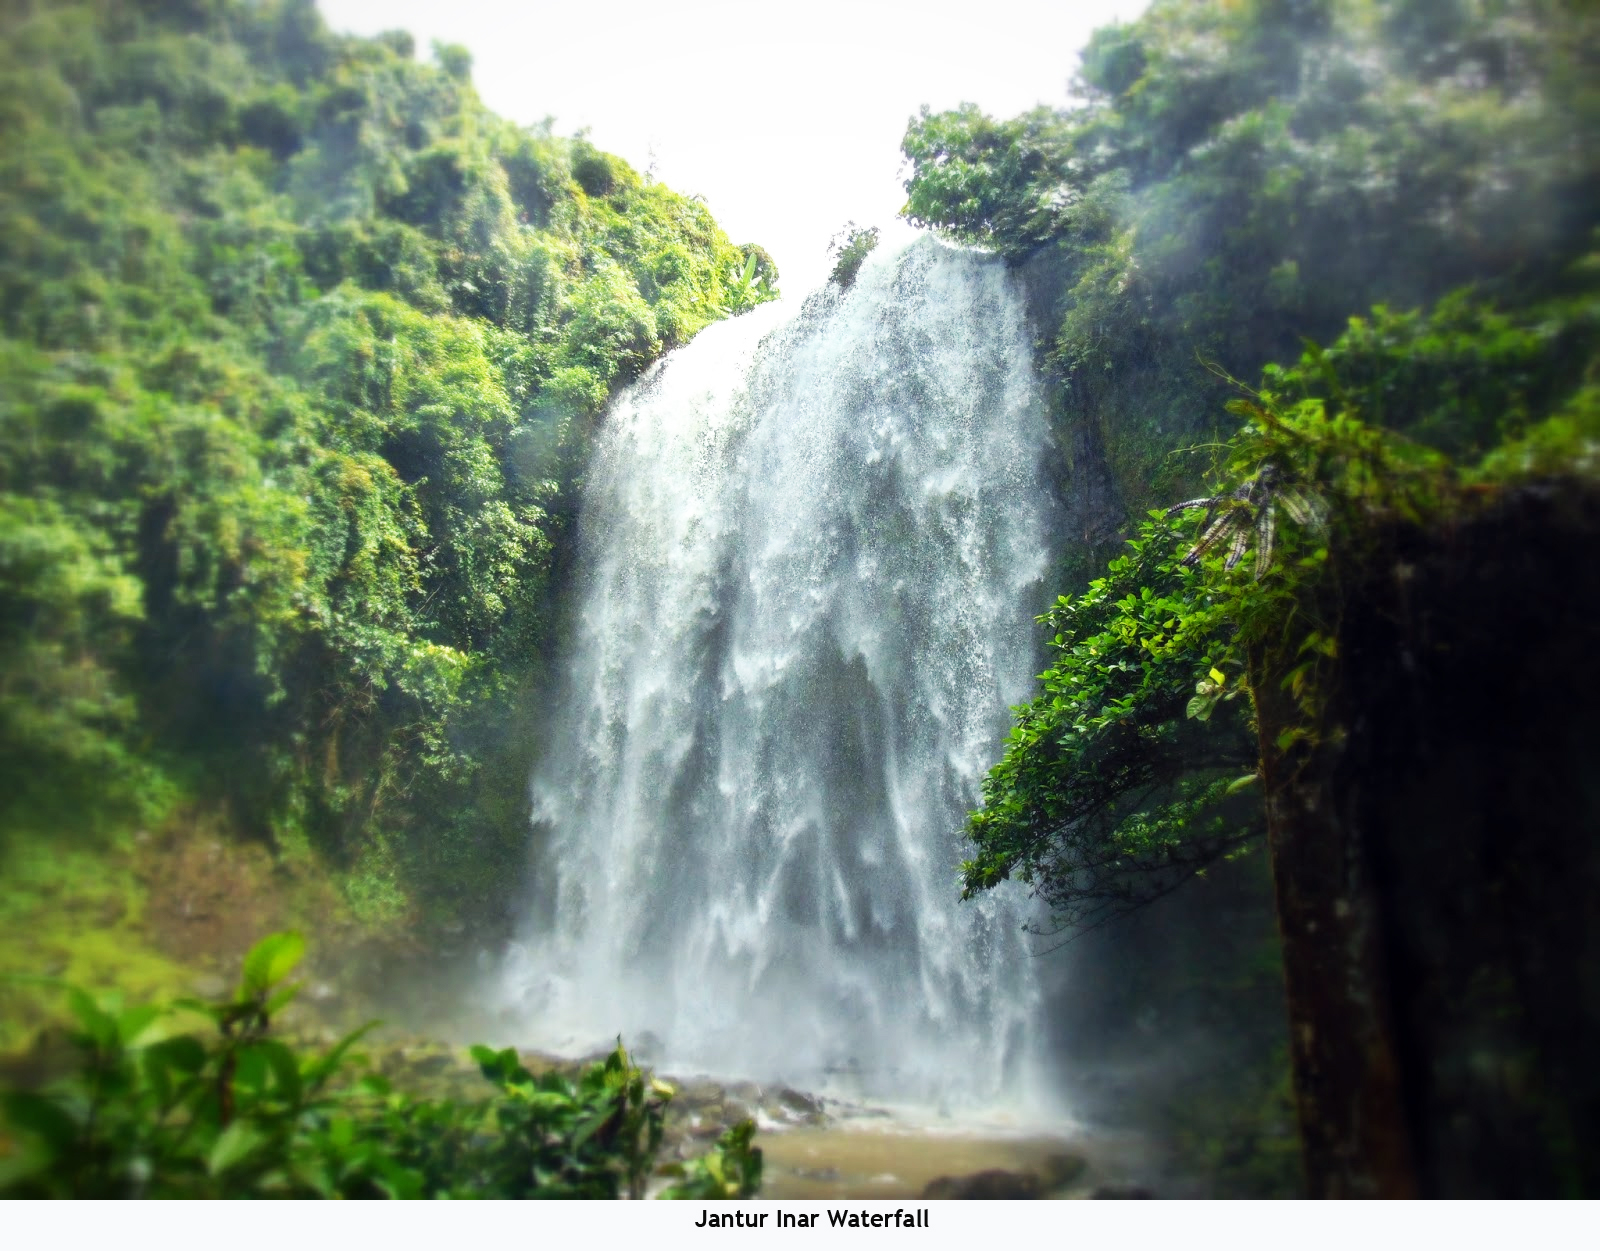 Beauty Landscape Indonesia April 2016 Jantur Inar Waterfall Located Kampung